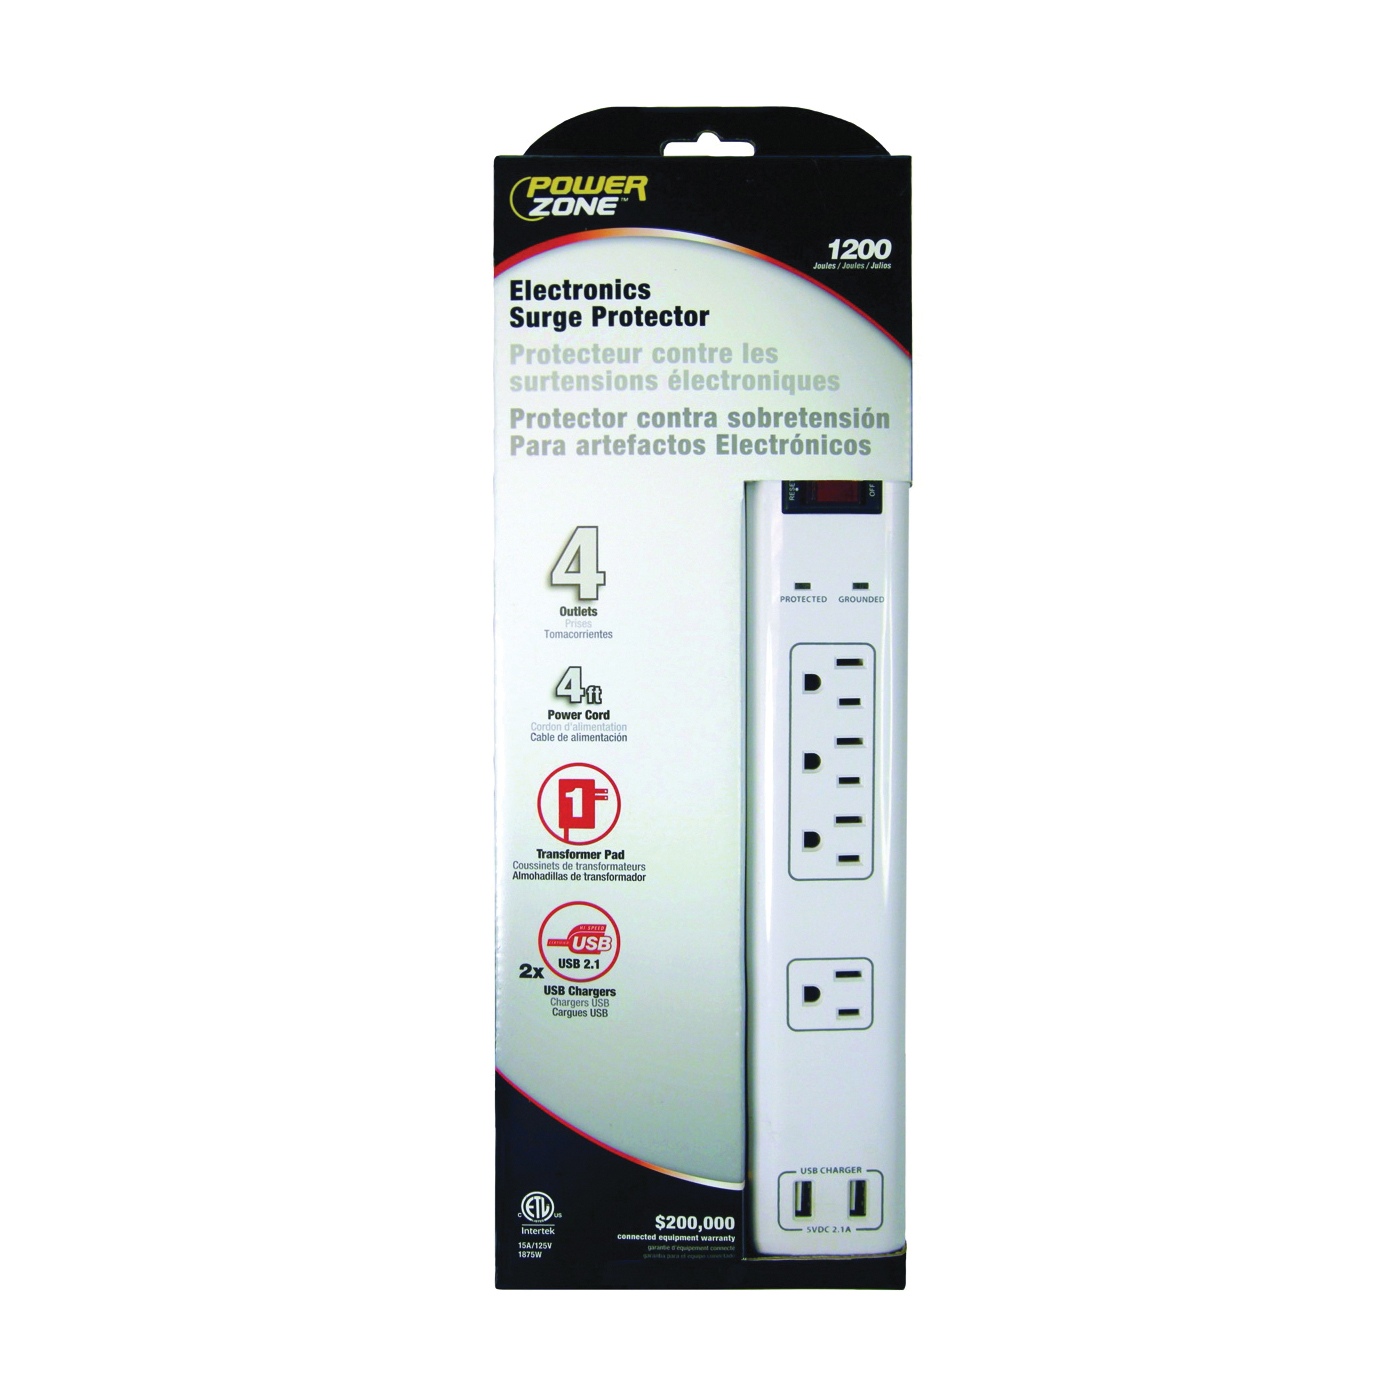 Picture of PowerZone OR505104 Surge Protector, 125 V, 15 A, 4-Outlet